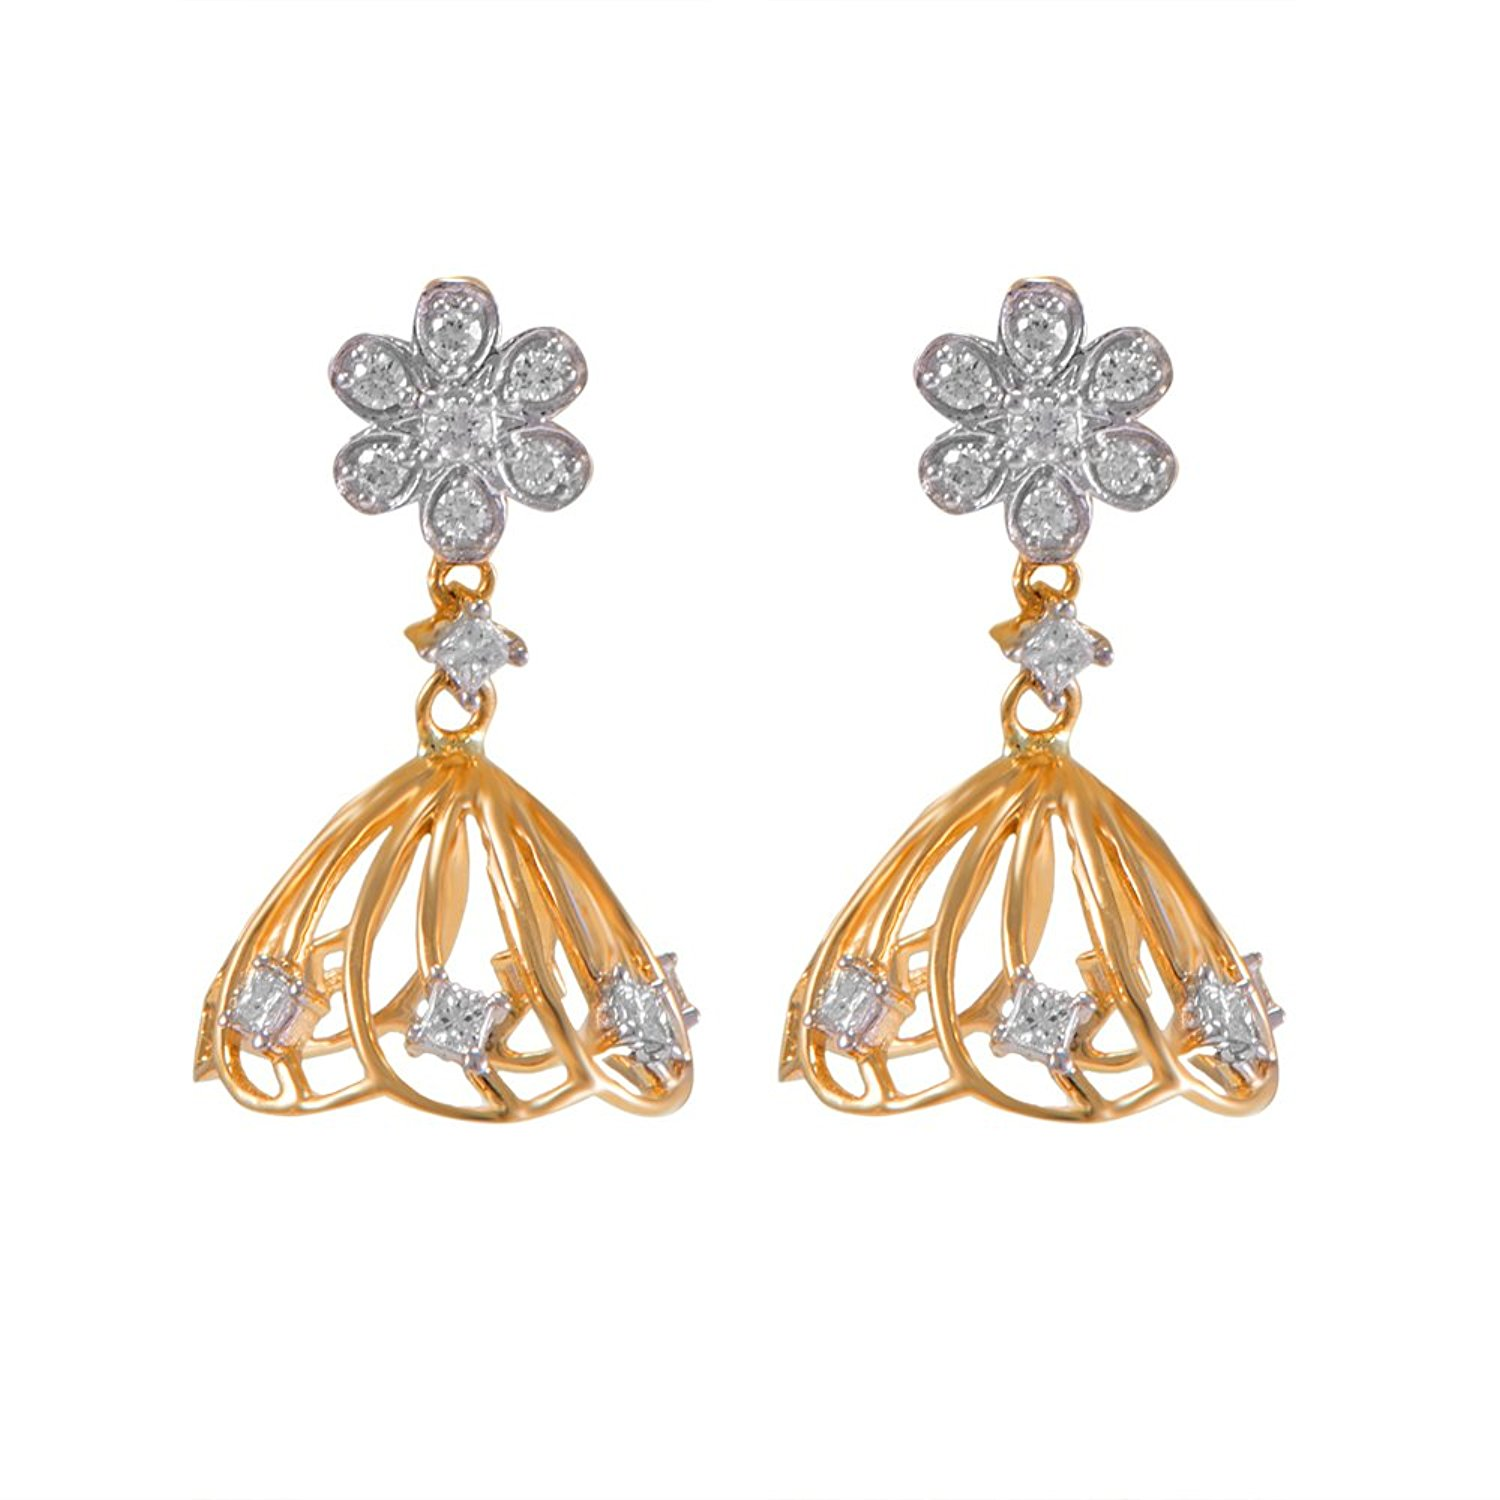 Joyalukkas Earrings Designs With Price